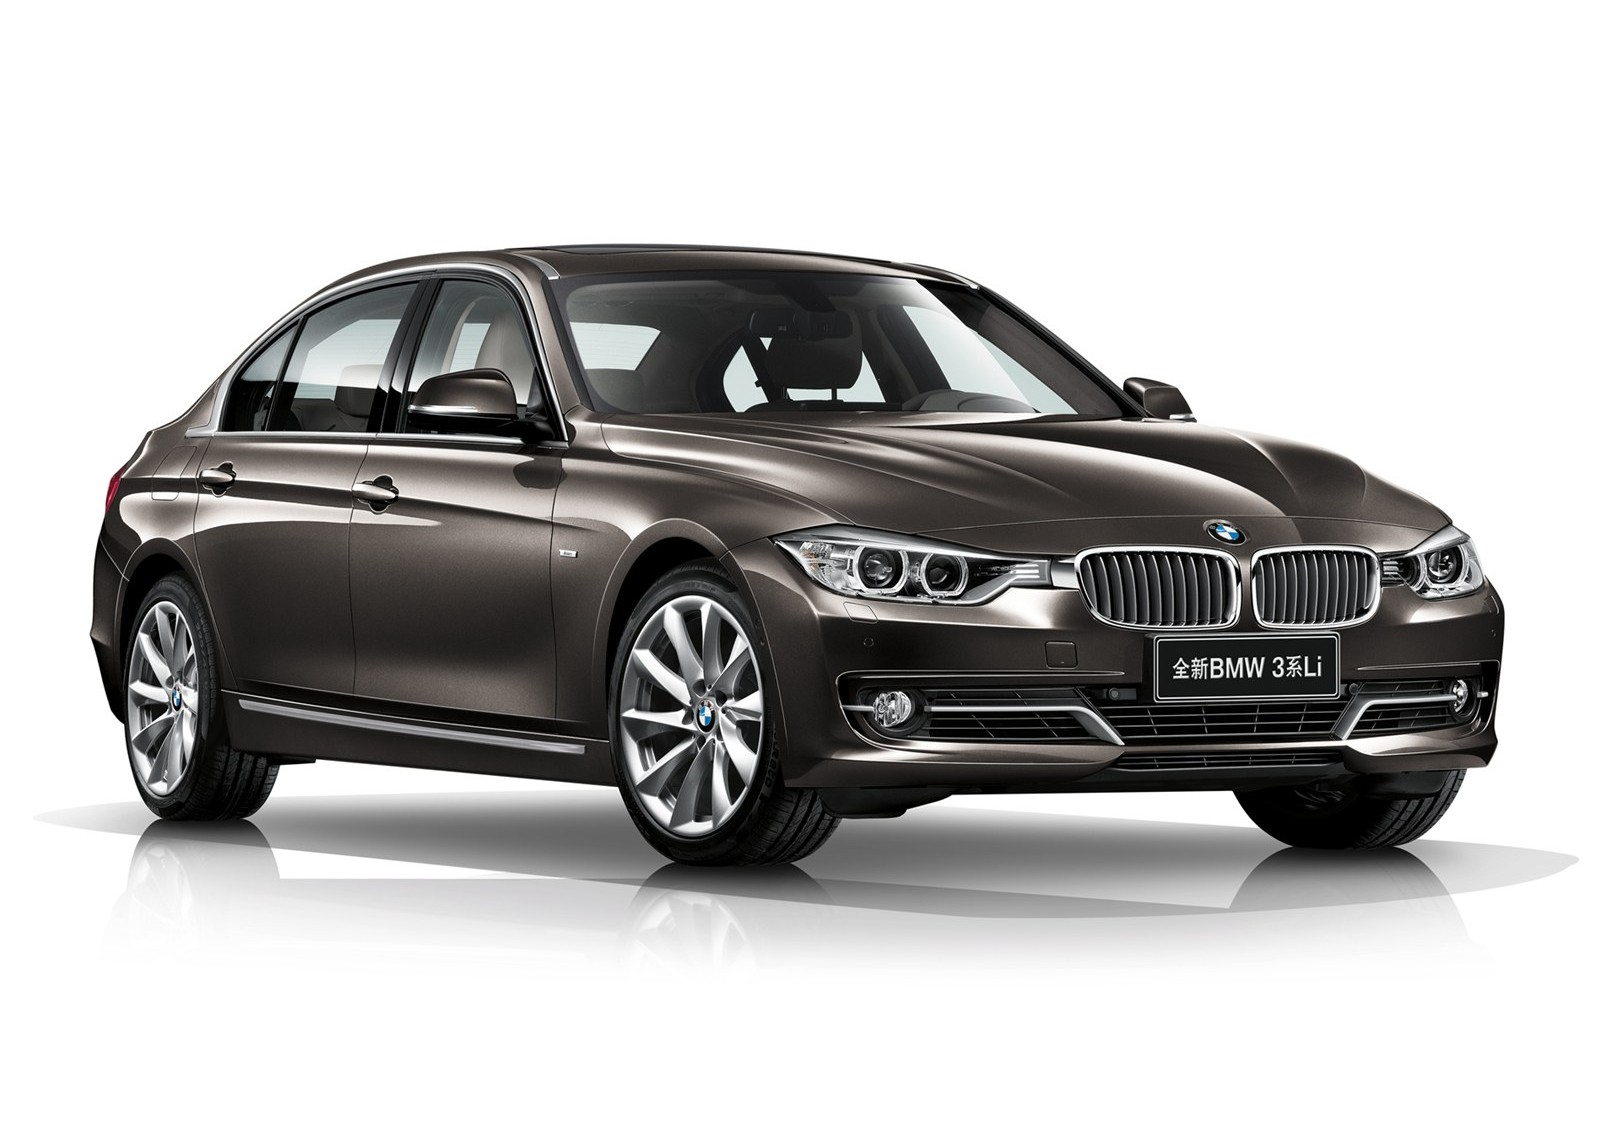 BMW 3 Series Jaguar is looking Forward To Launching Wallpapers For Android Wallpaper